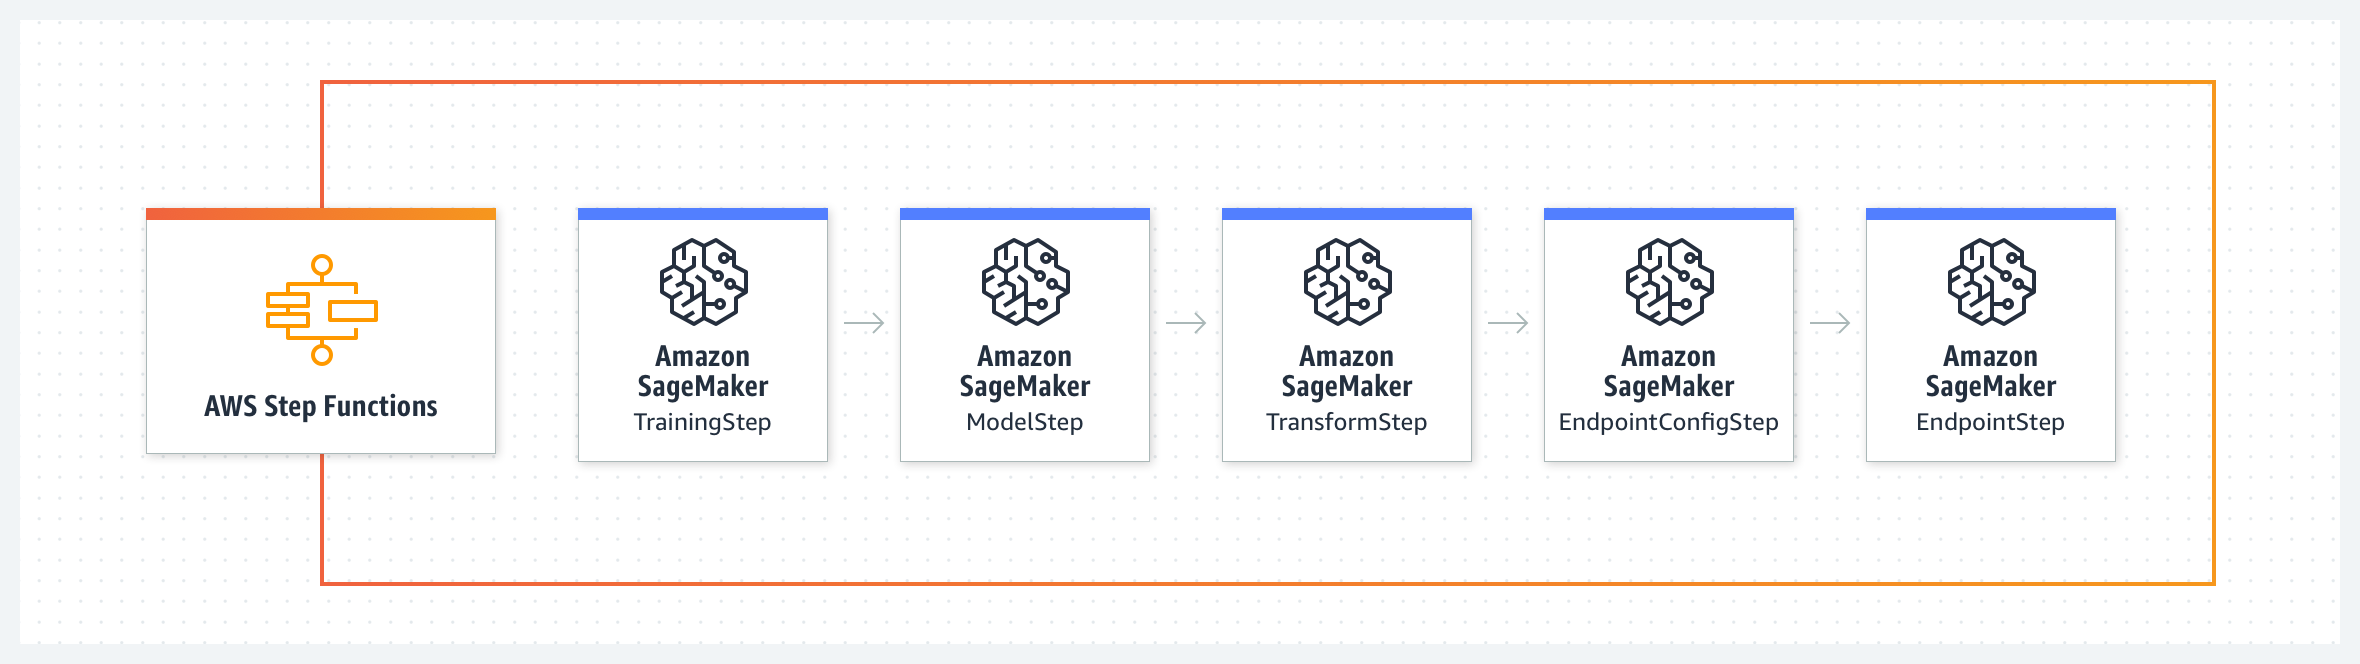 use-case-diagram_AWS-Step-Functions_Data-Science-SDK-example@2x